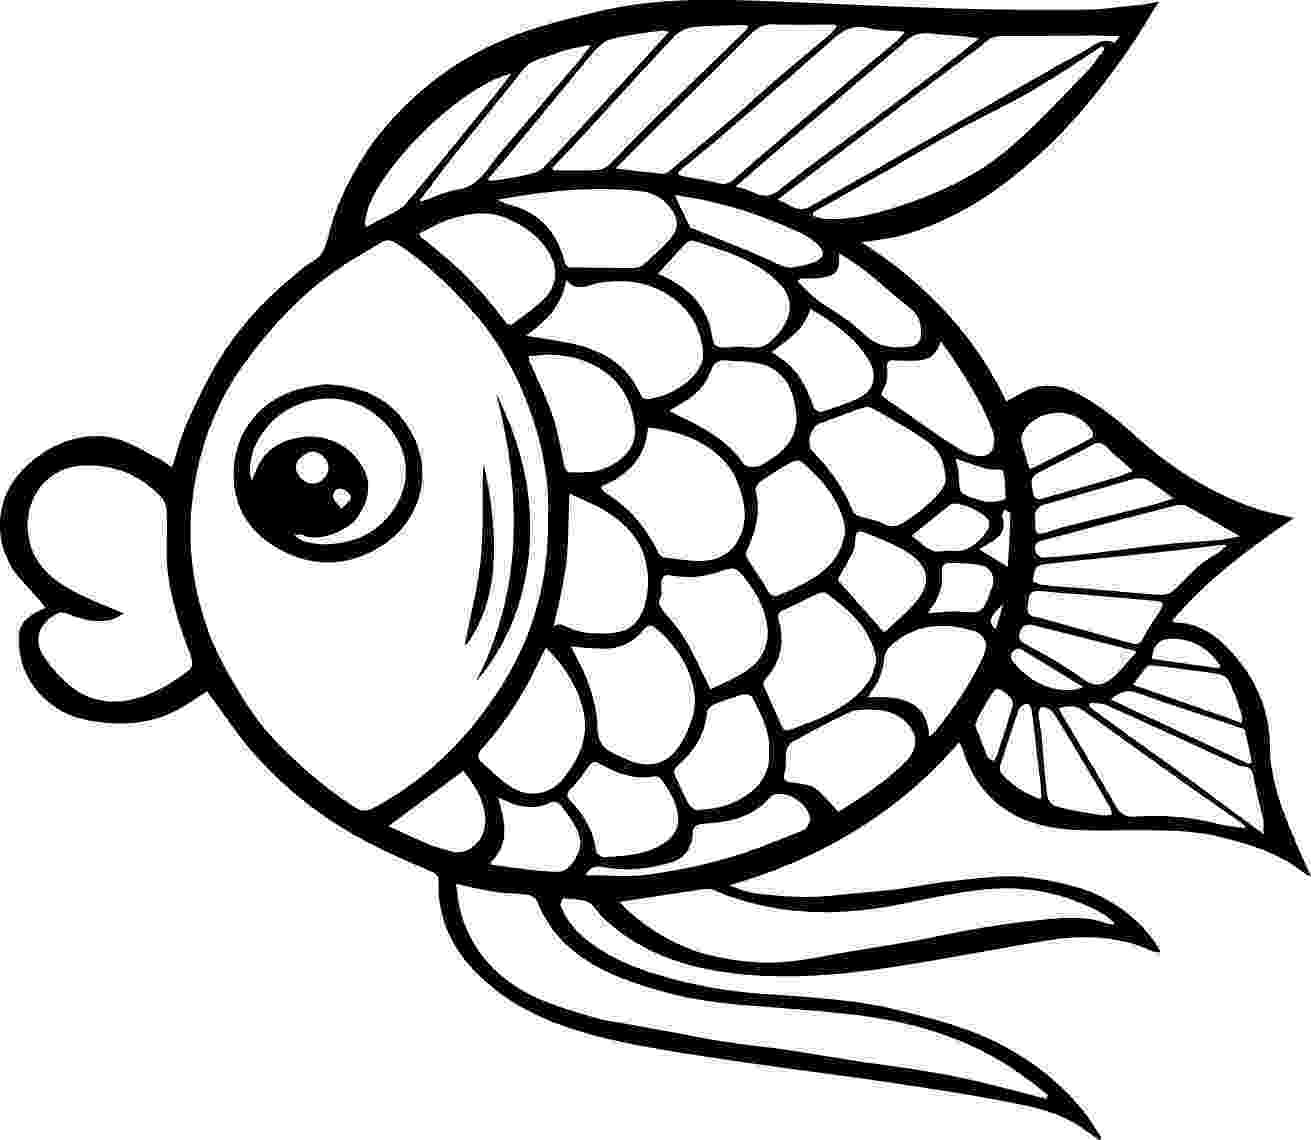 fish cartoon coloring pages cute fish coloring pages for kids from the finding nemo fish cartoon pages coloring